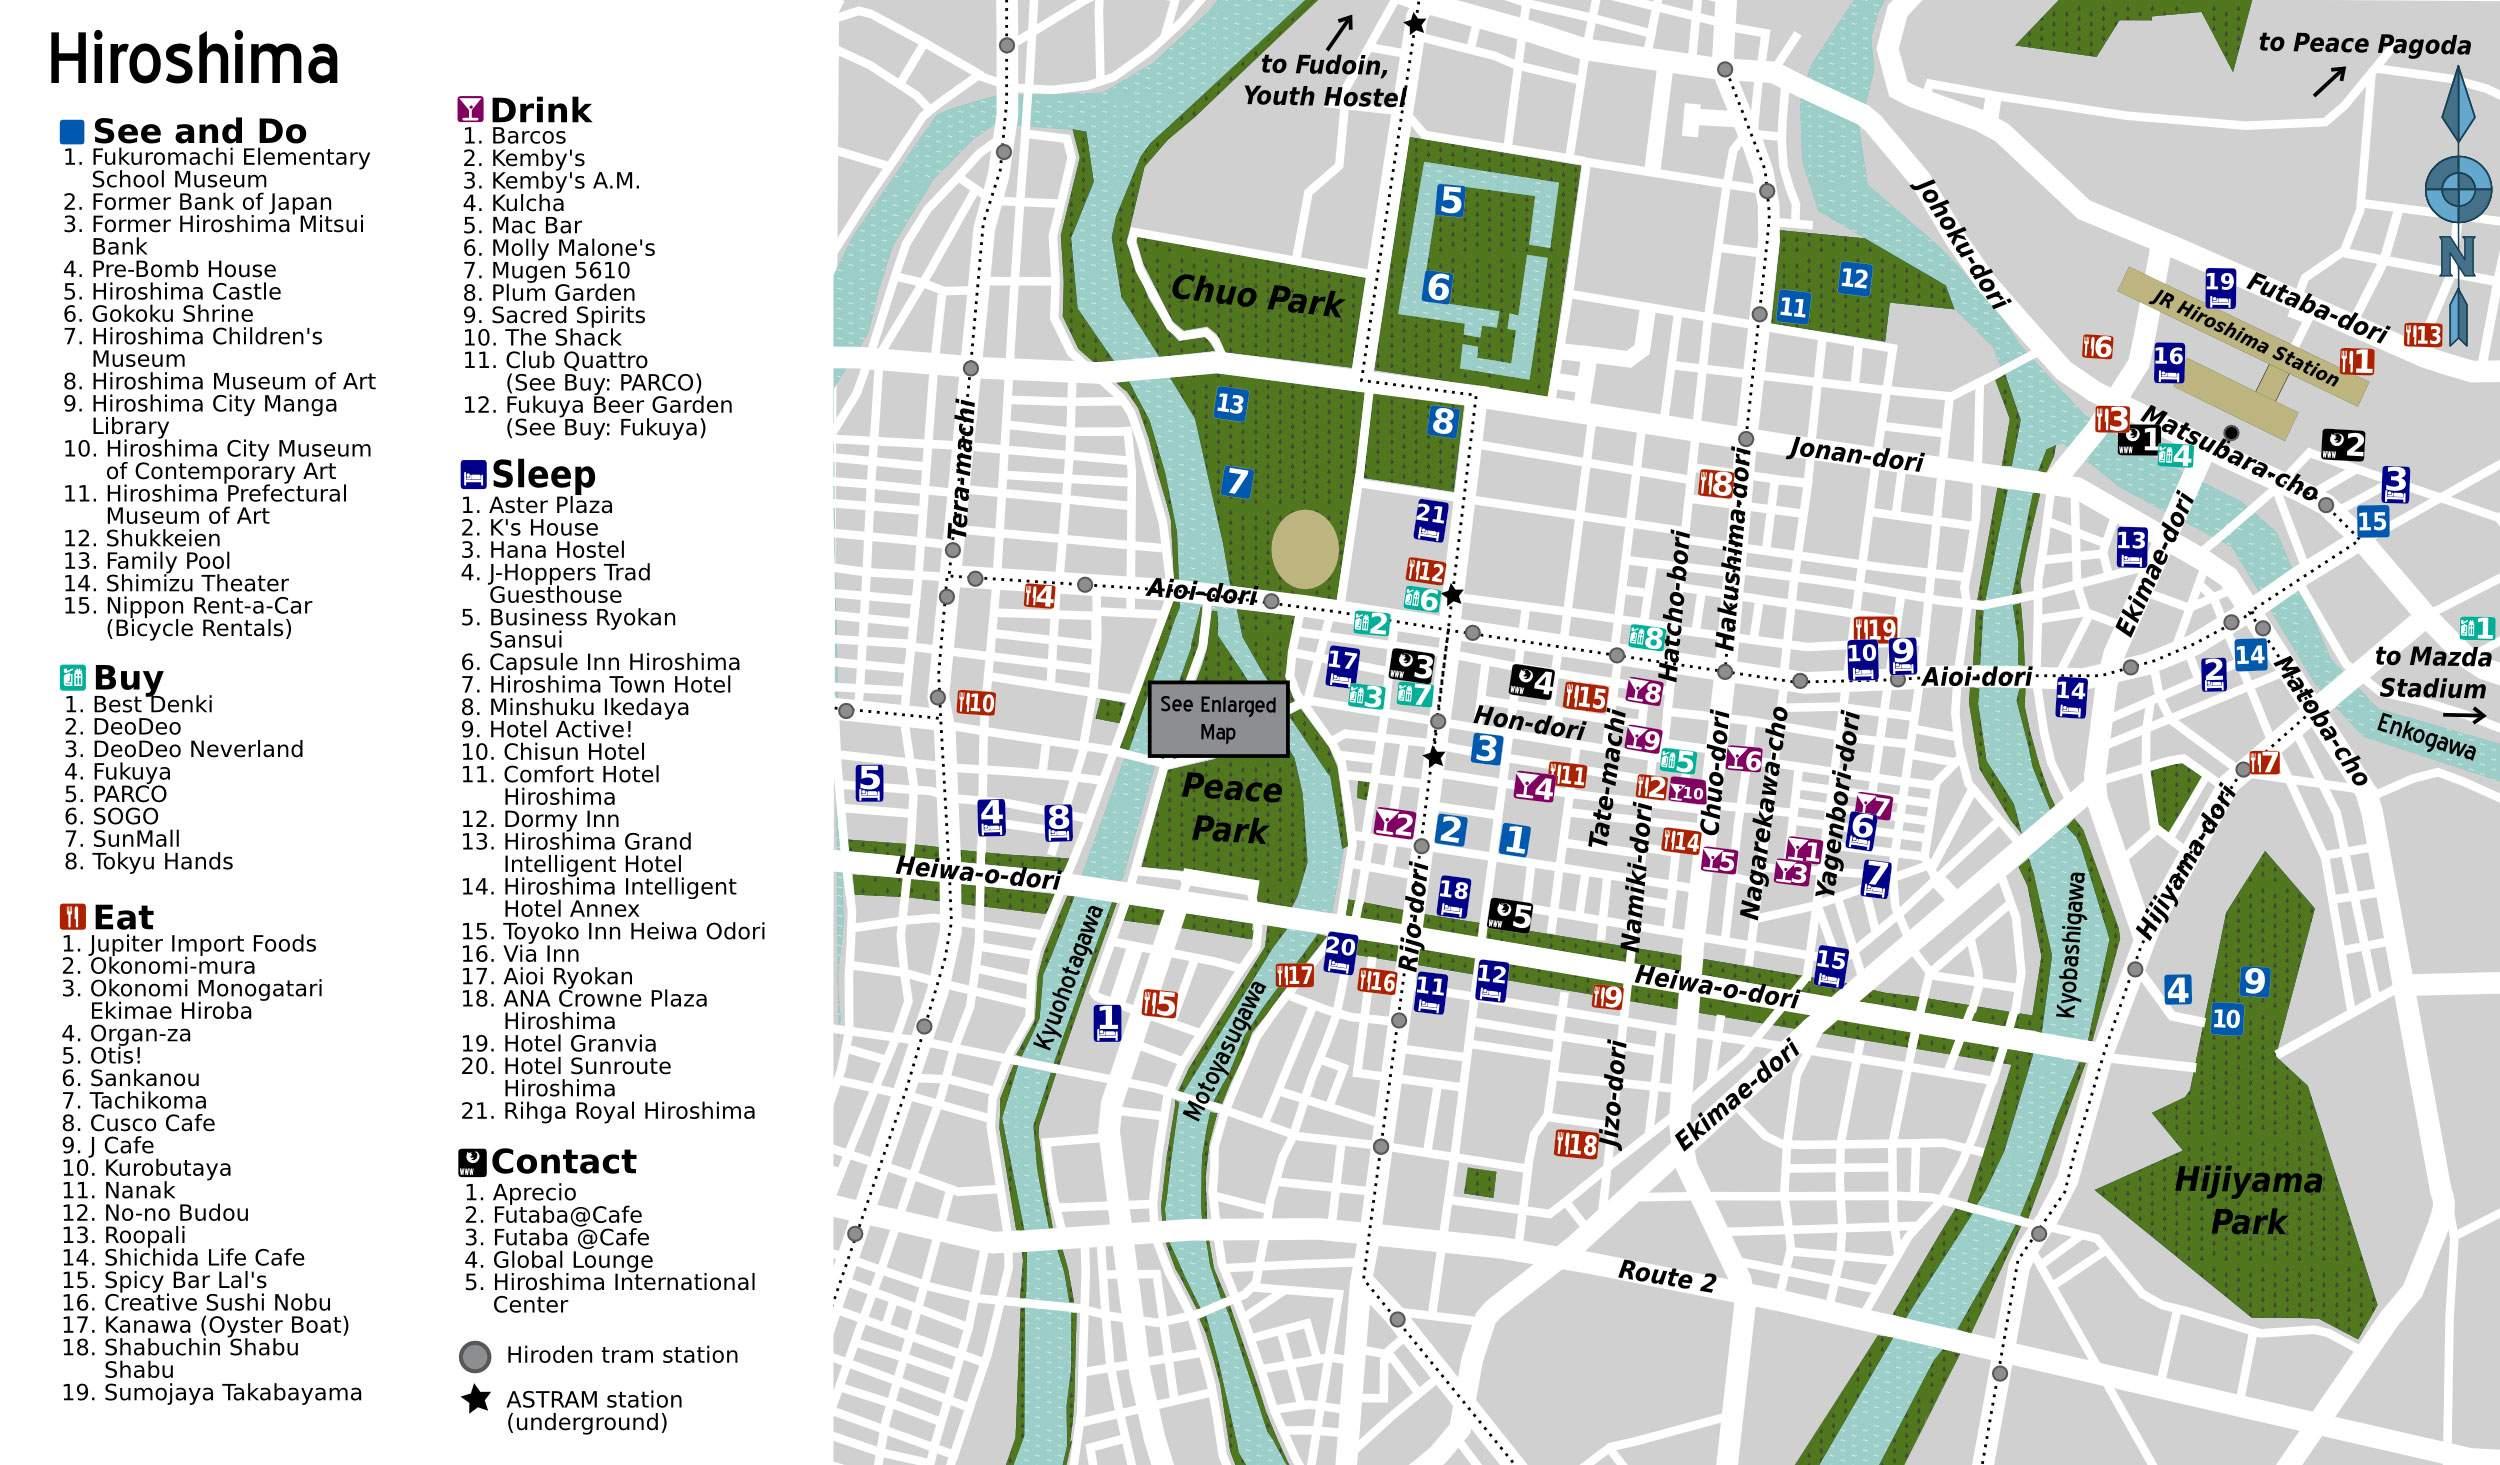 Map of Hiroshima